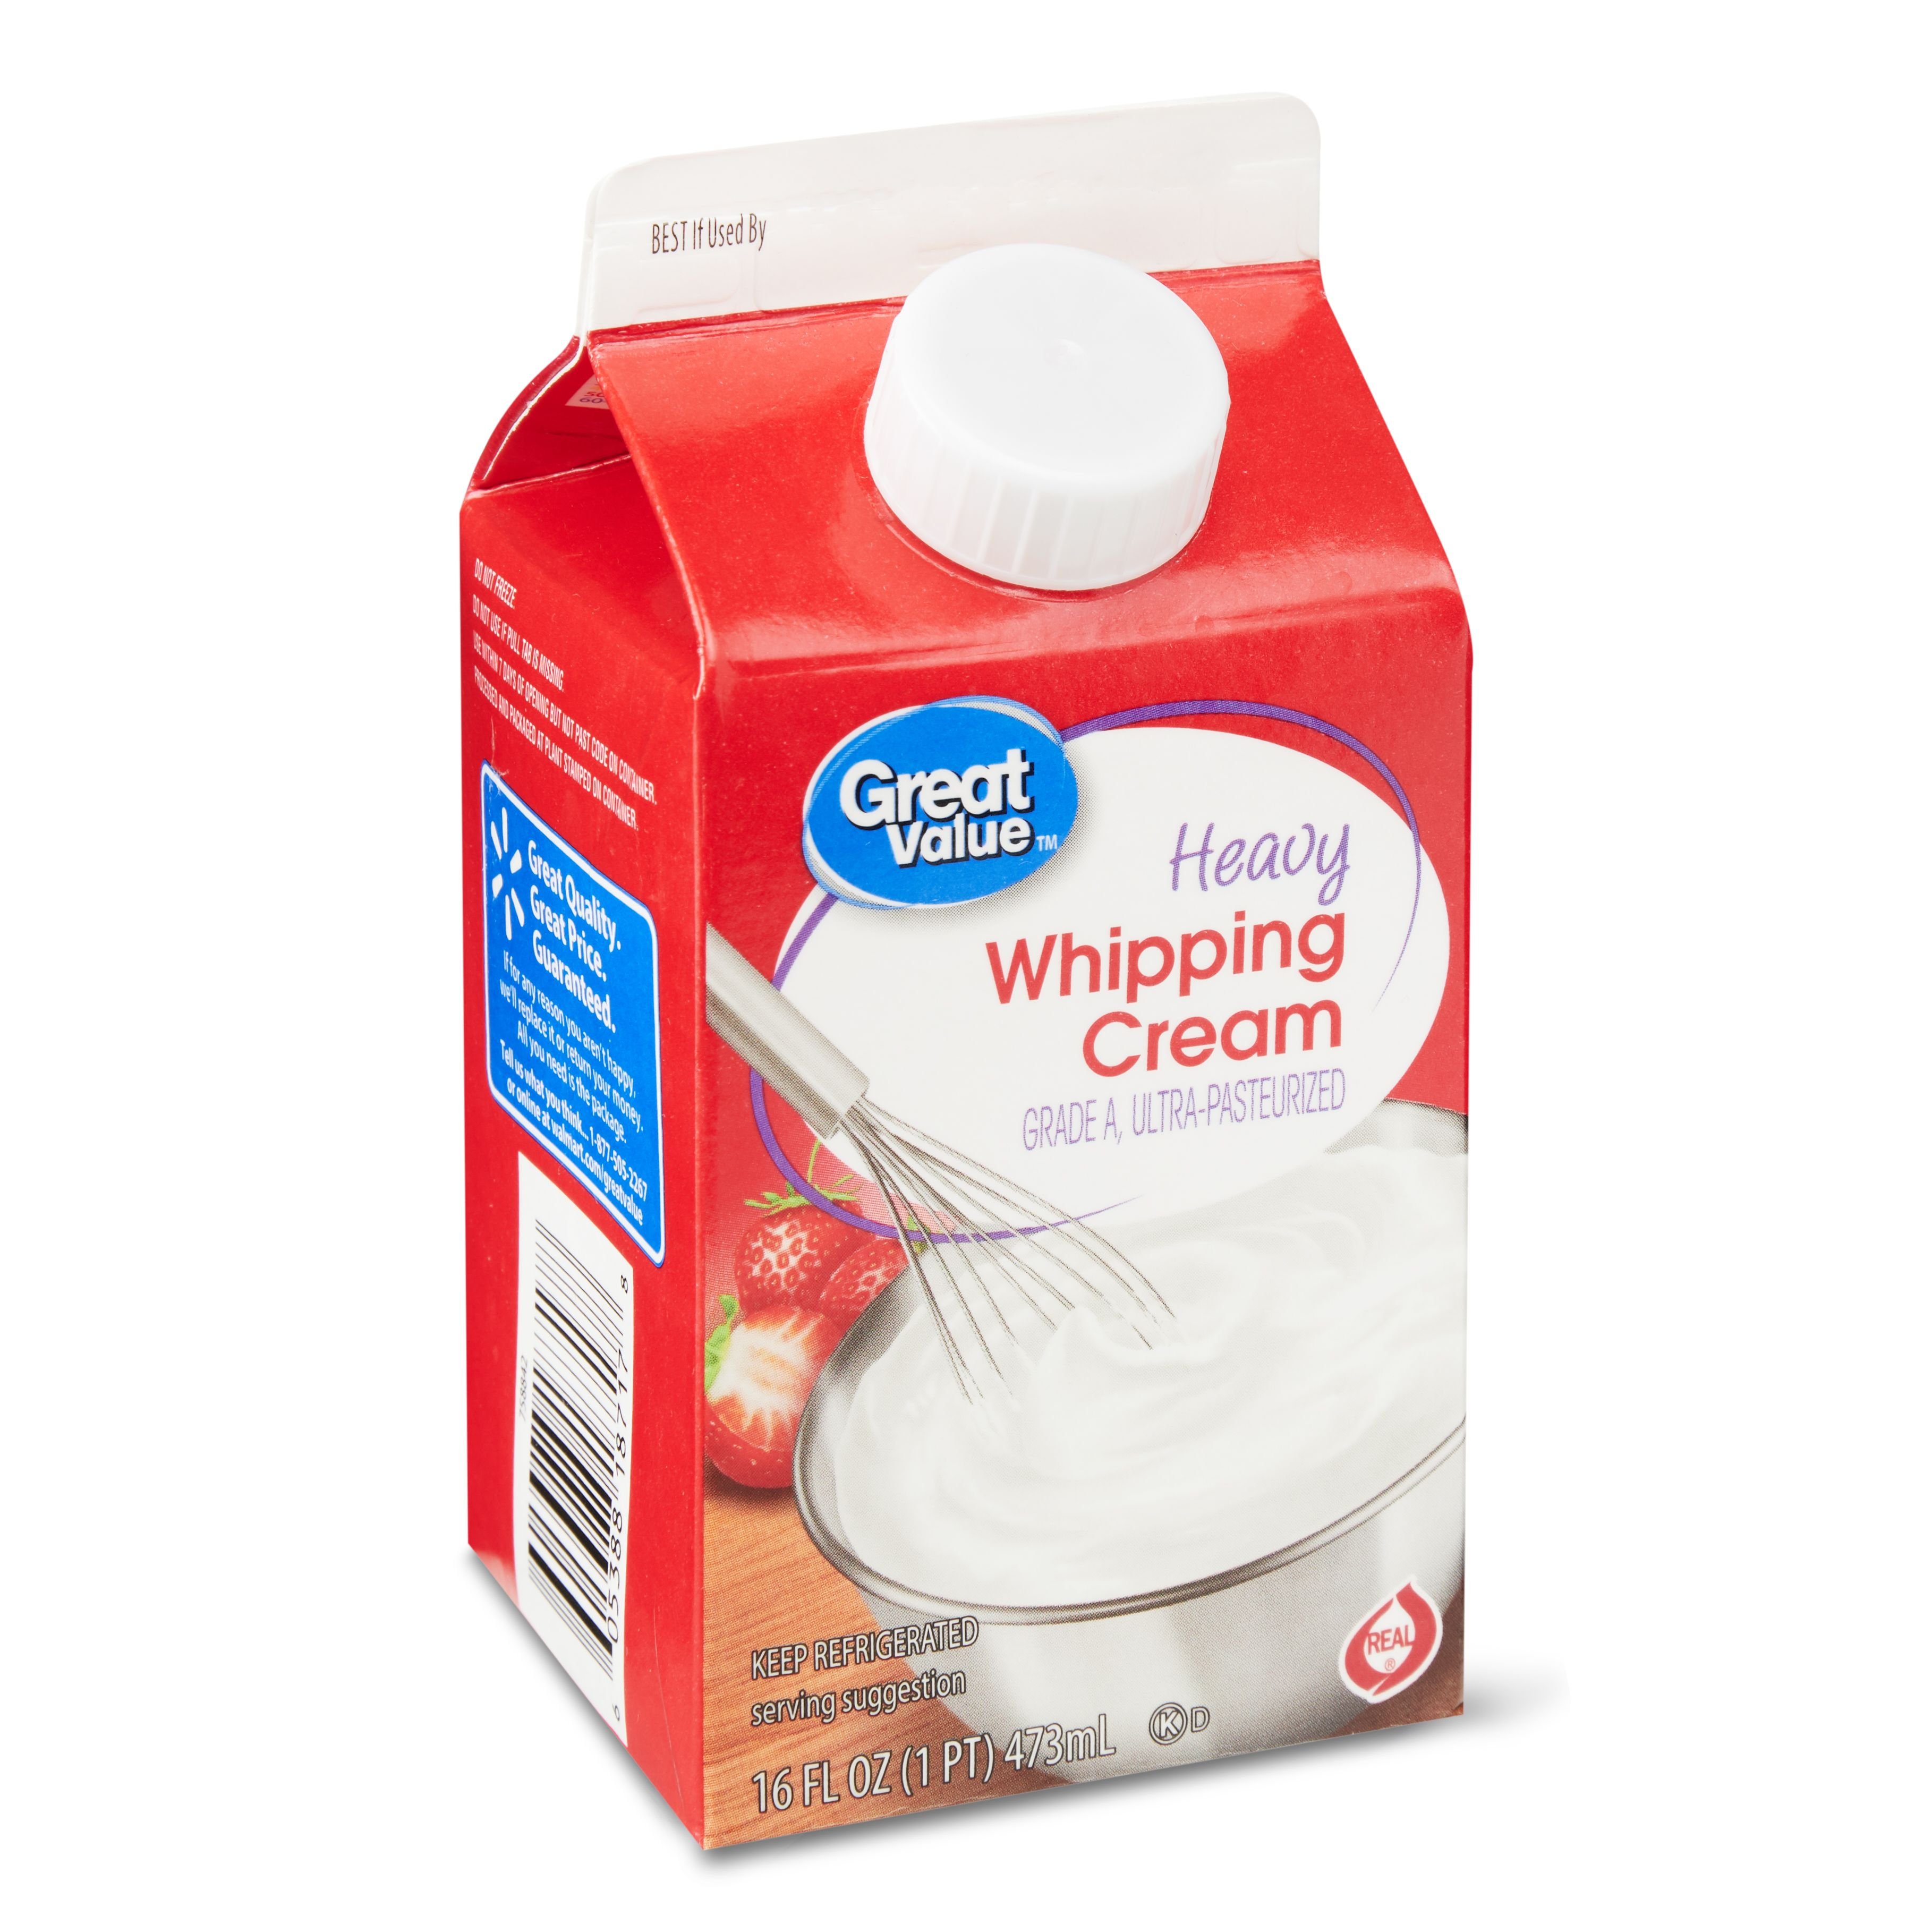 [1.58] Great Value UltraPasteurized Real Heavy Whipping